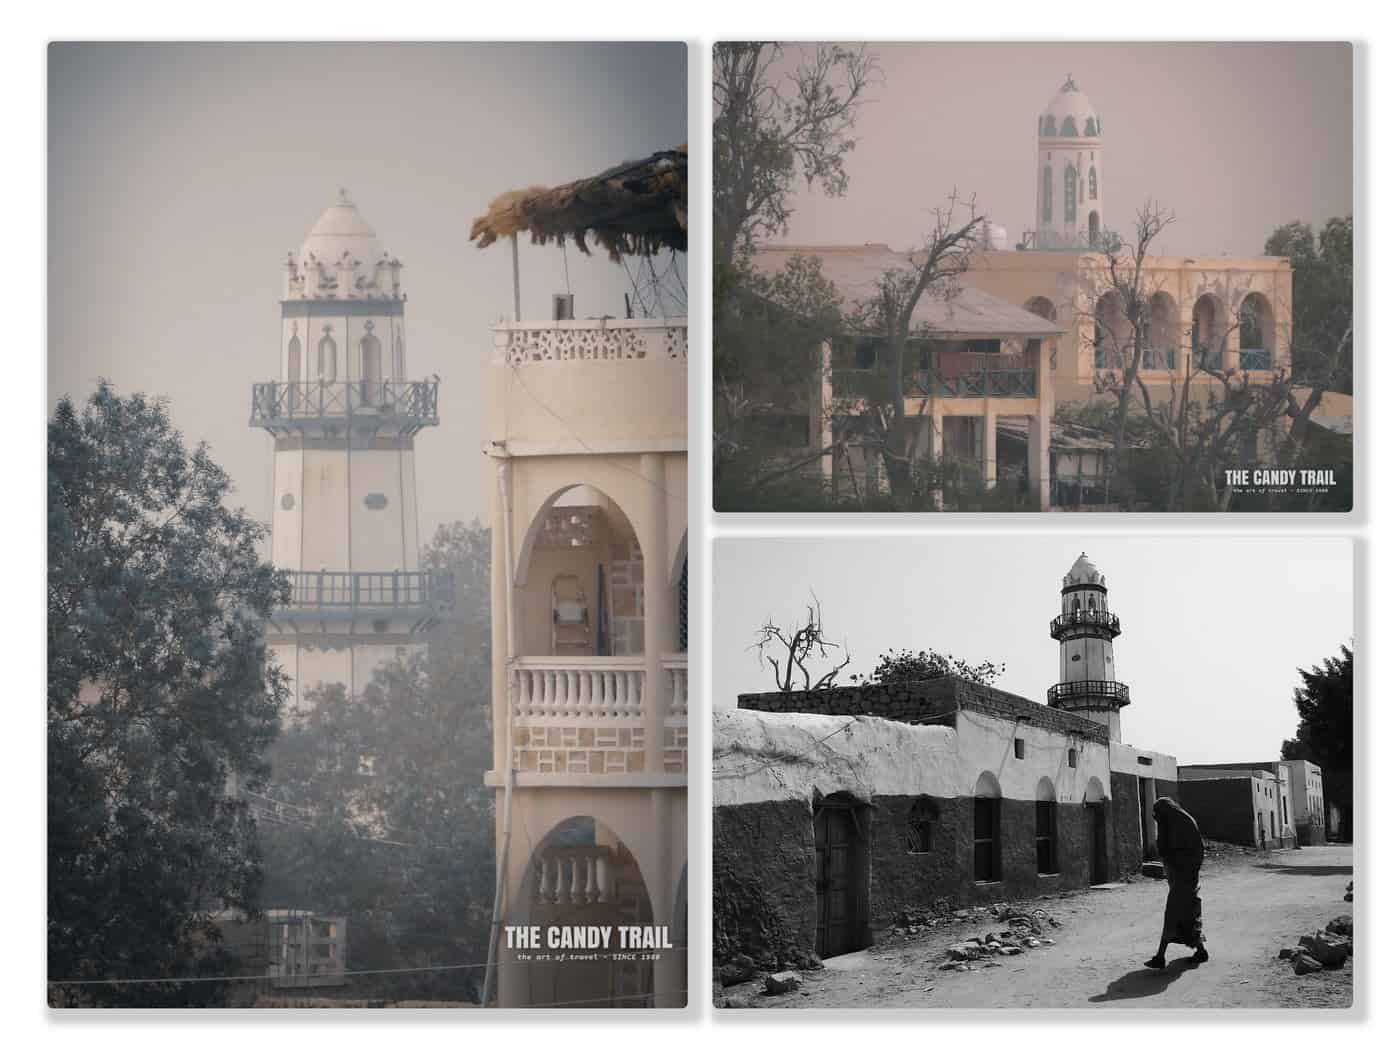 history of berbera - mosques in old town of Somaliland port city.